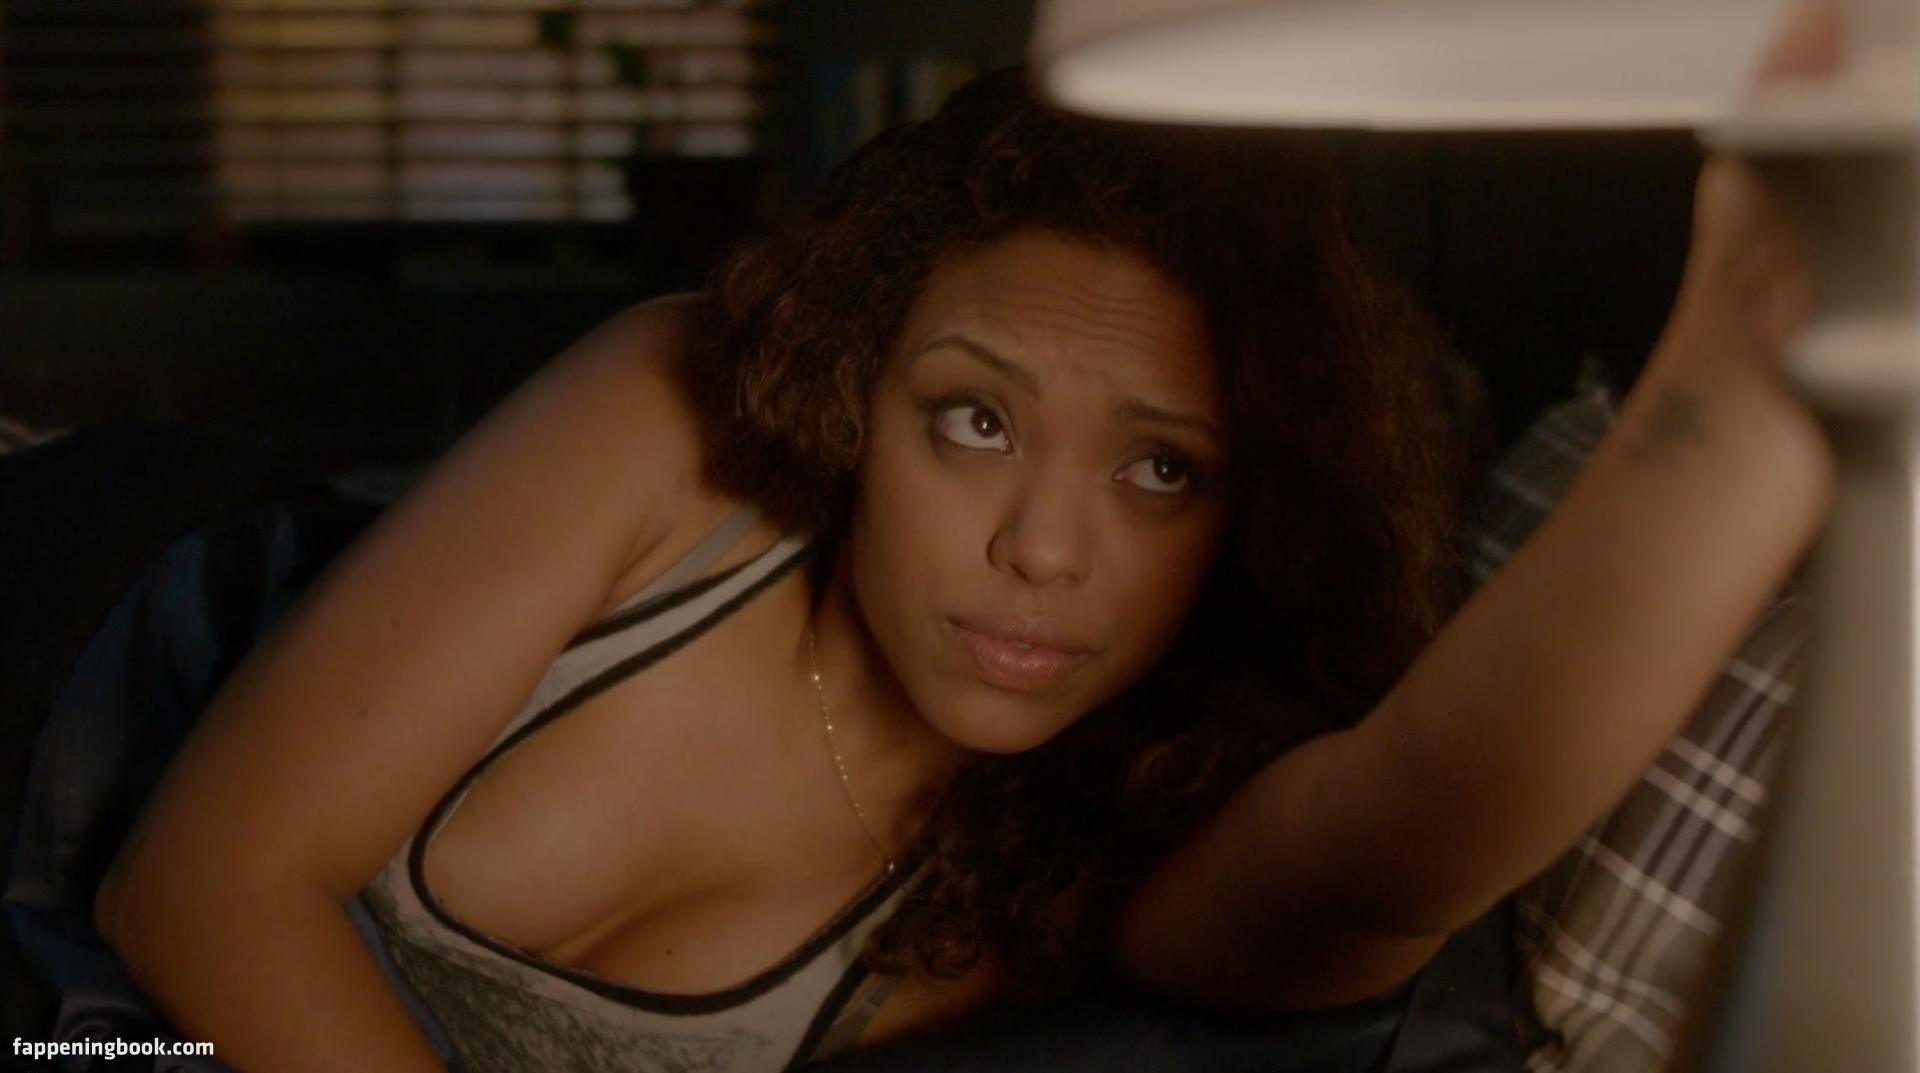 Jaime Lee Kirchner Nude, Sexy, The Fappening, Uncensored - Photo #232713 - FappeningBook